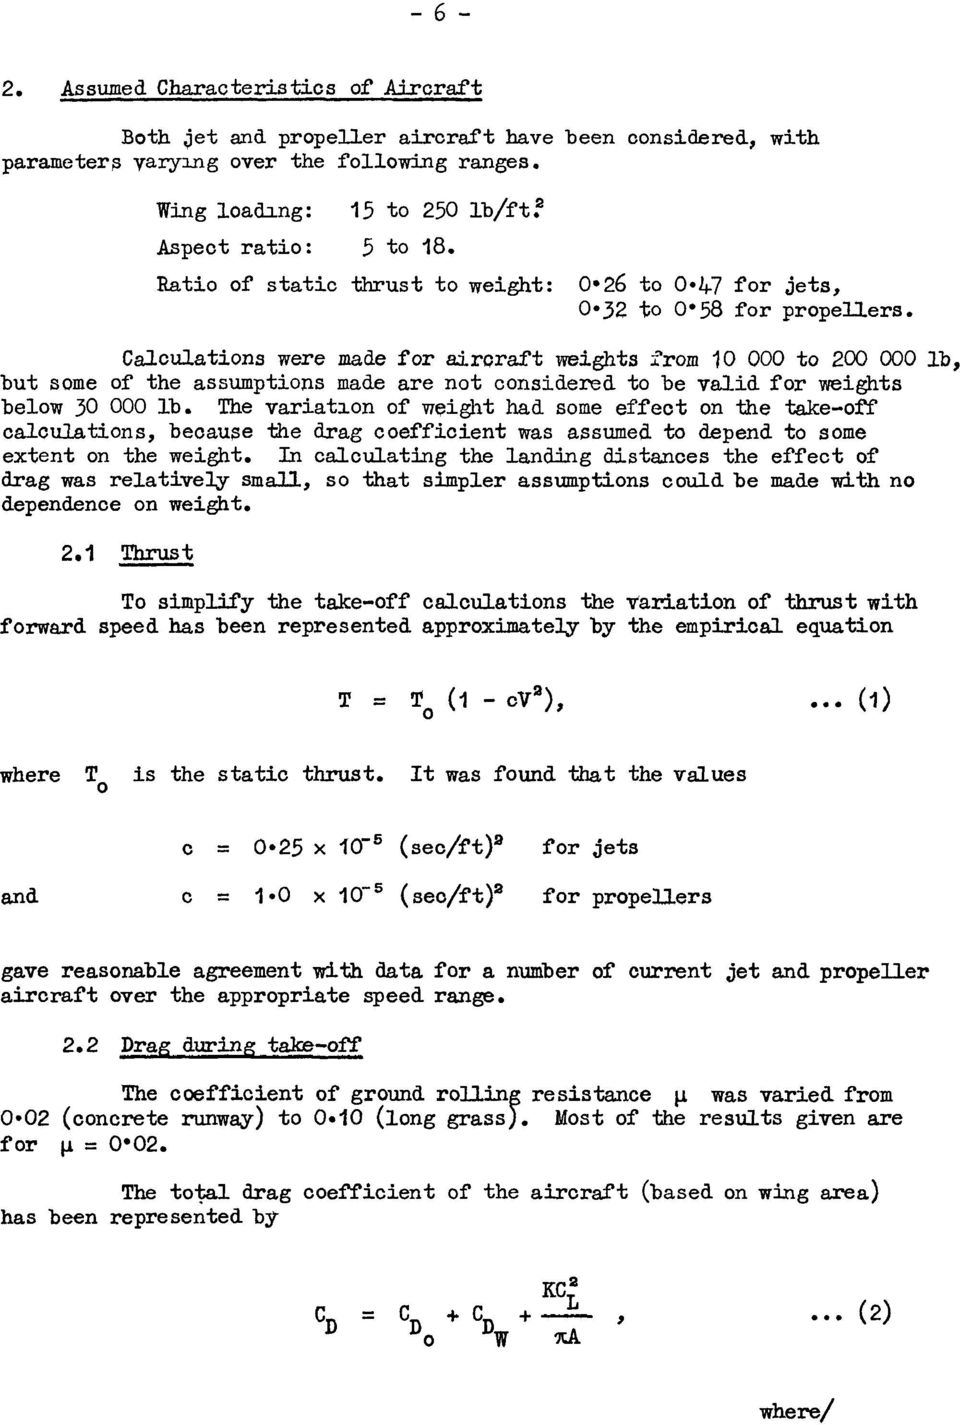 Calculations were made for aircraft weights from j0 000 to 200 000 lb, but some of the assumptions made are not considered to be valid for weights below 30 000 lb.